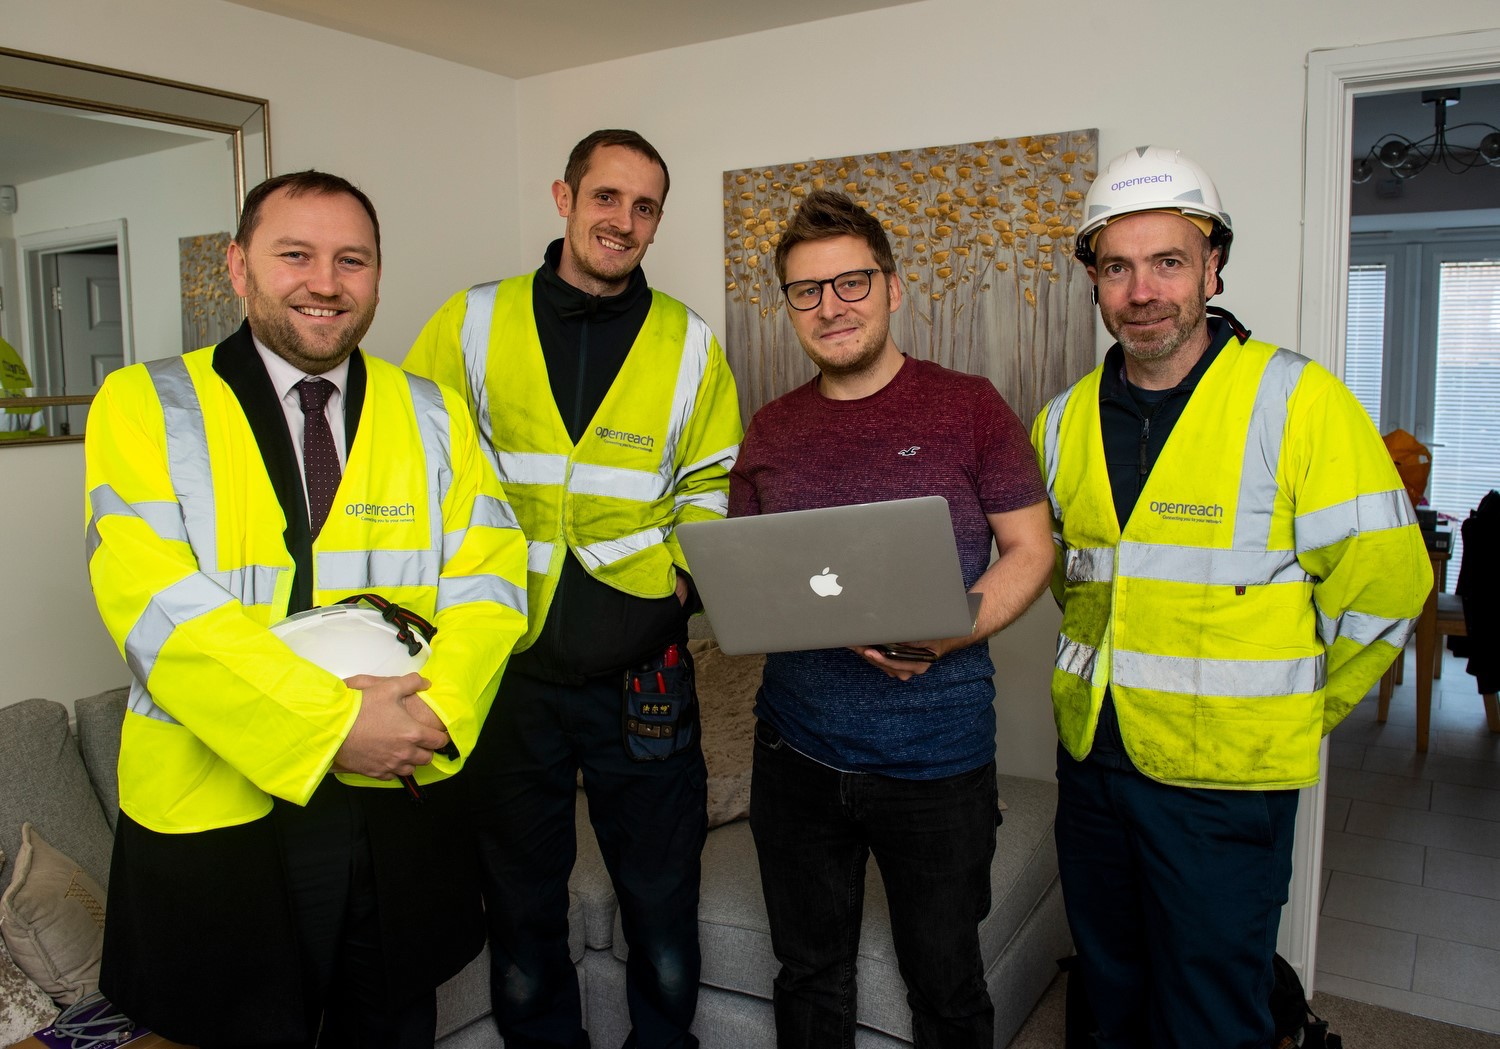 Ian Murray with Openreach engineer and resident